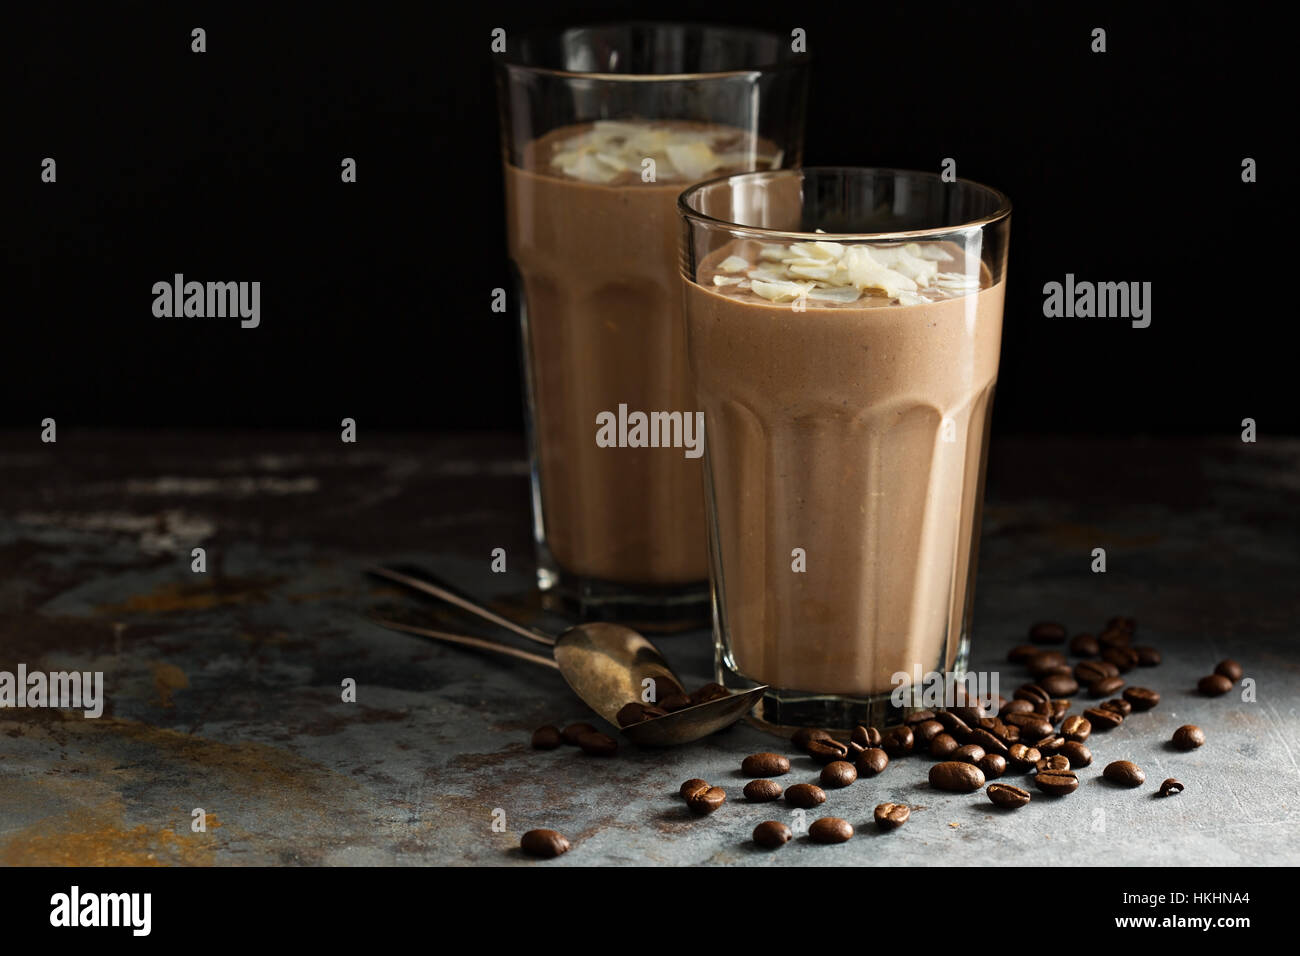 Coffee smoothie with coconut - Stock Image